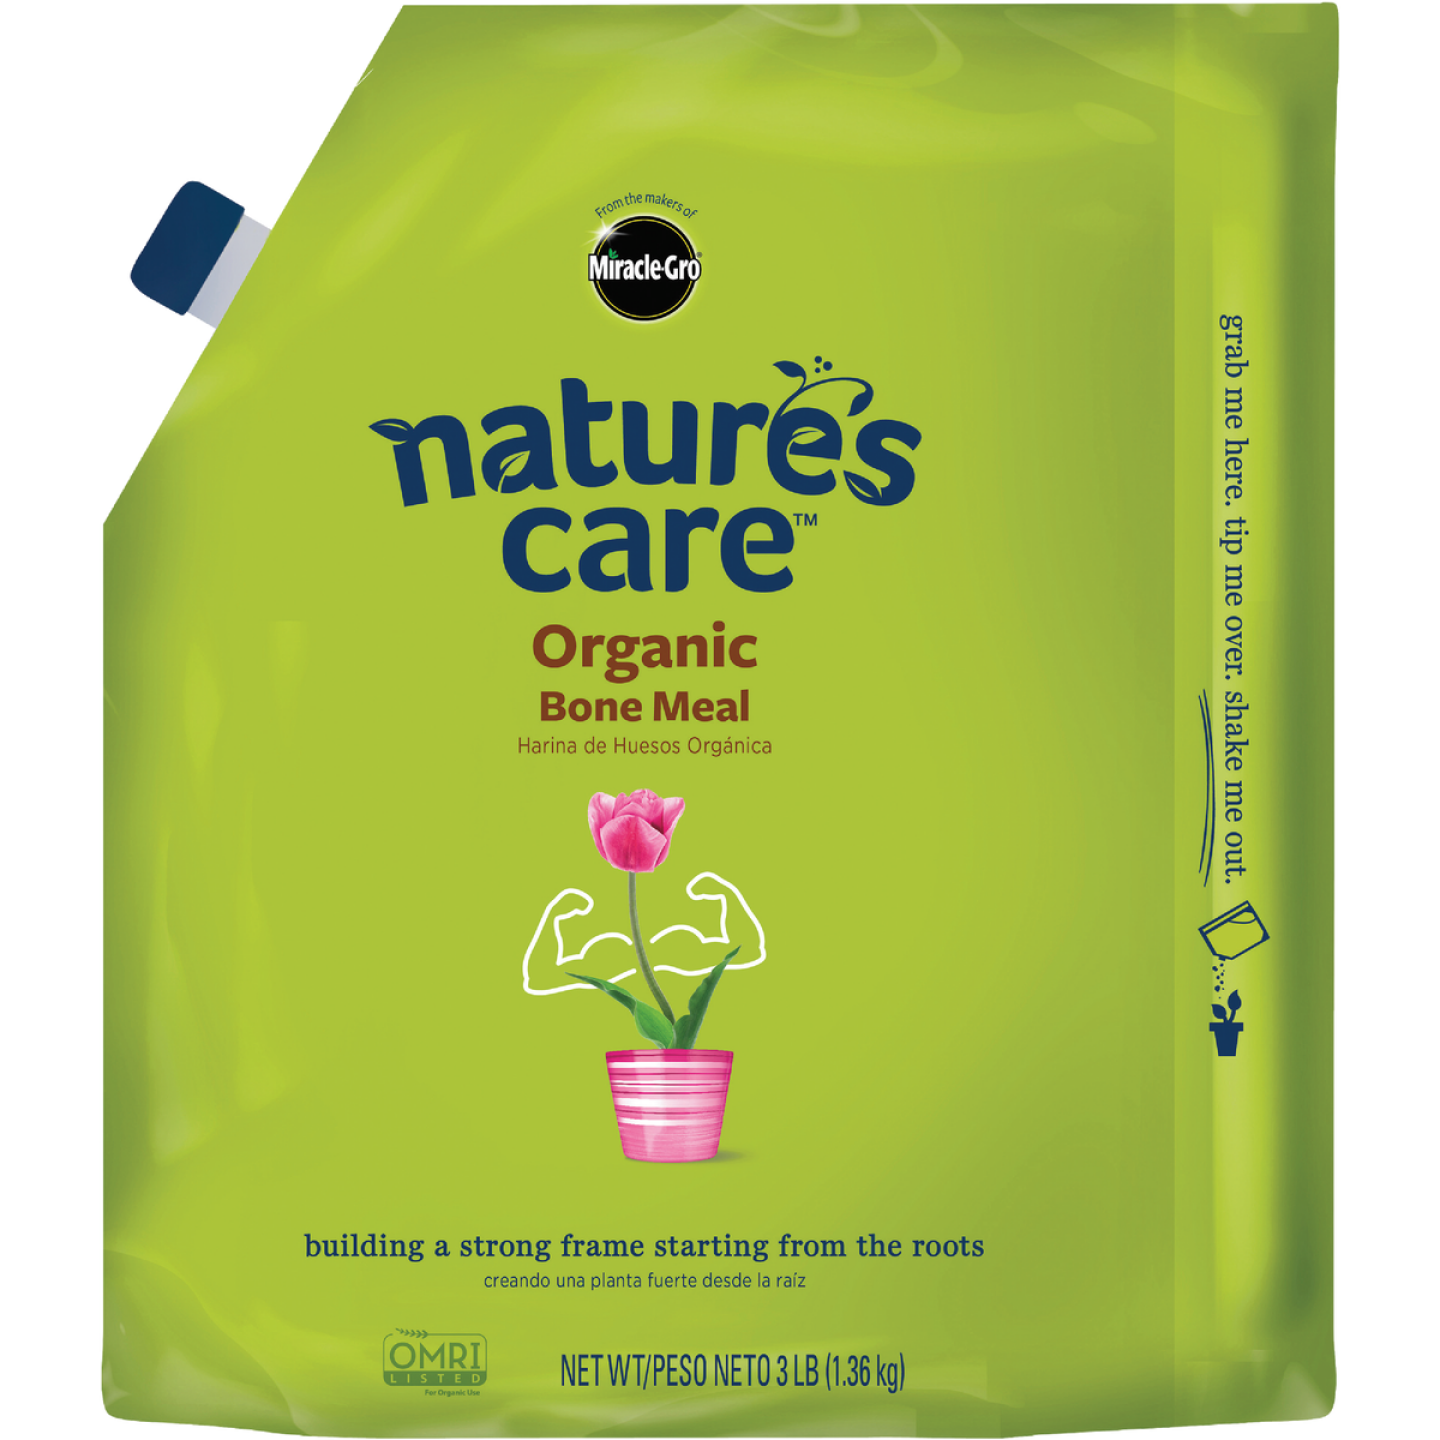 Miracle-Gro Nature's Care 3 Lb. 6-8-0 Bone Meal Image 1